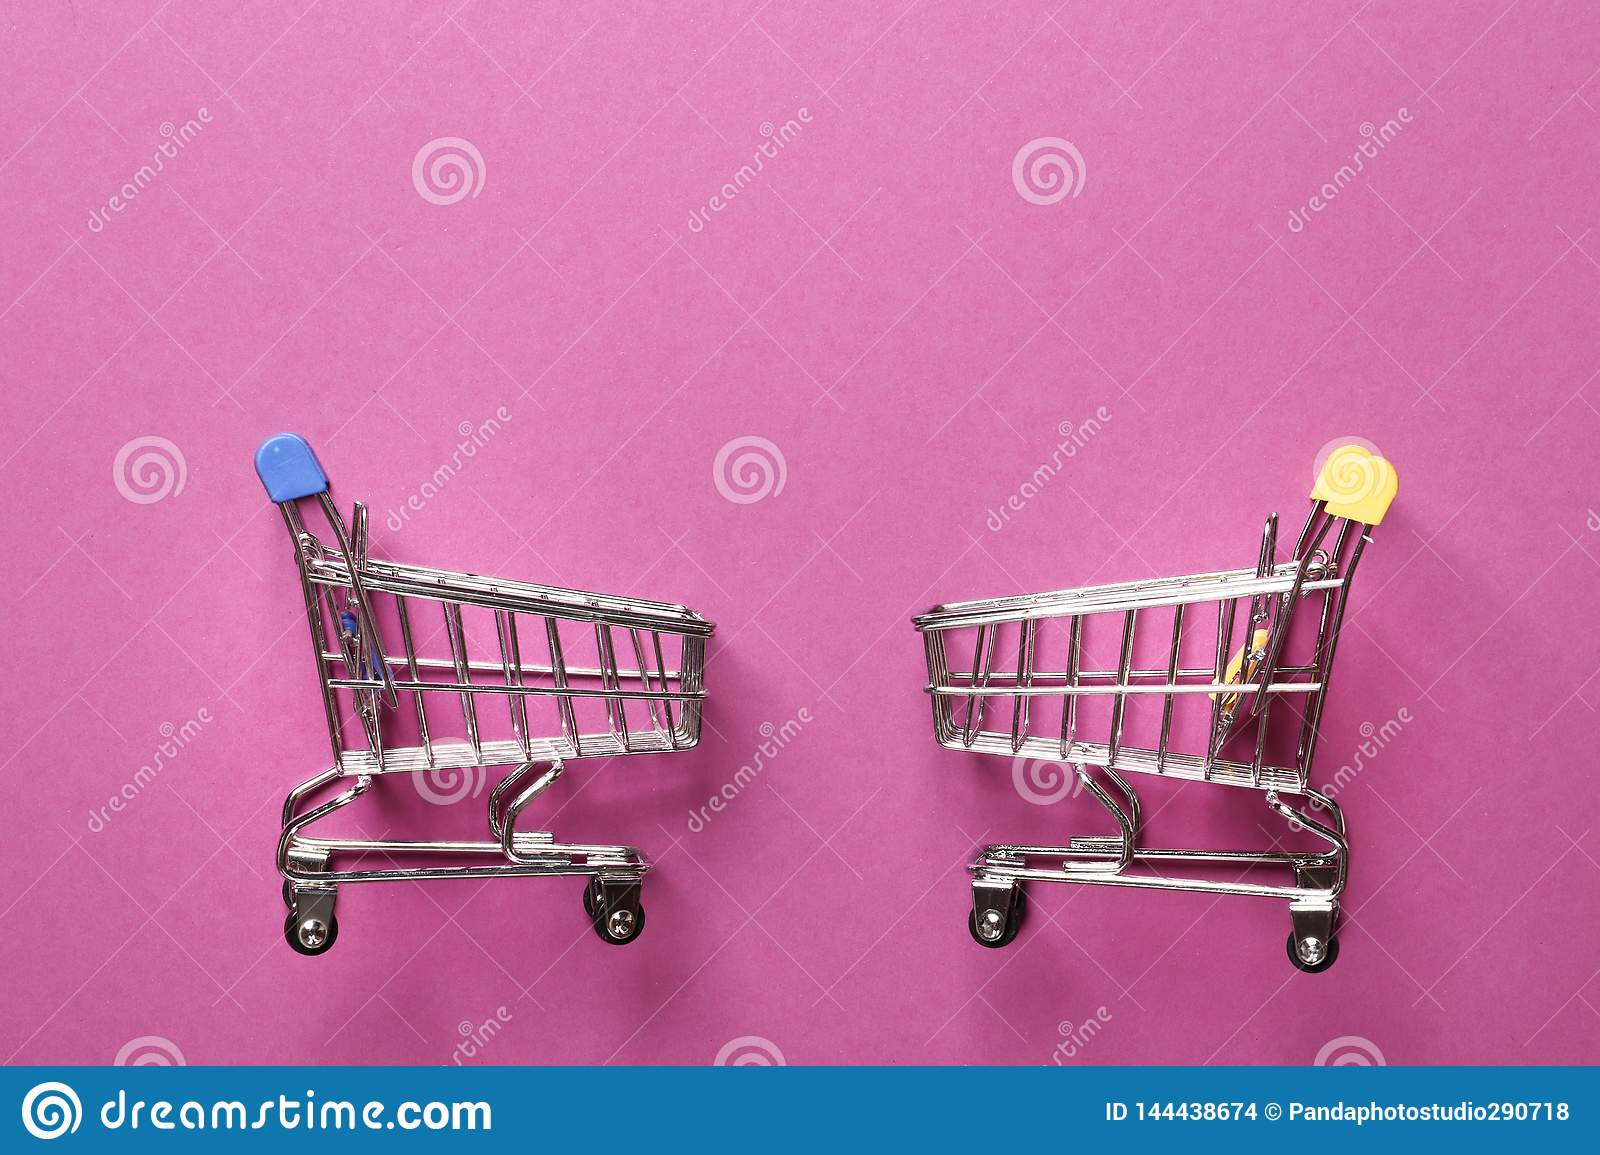 Hopping cart on a pink  background